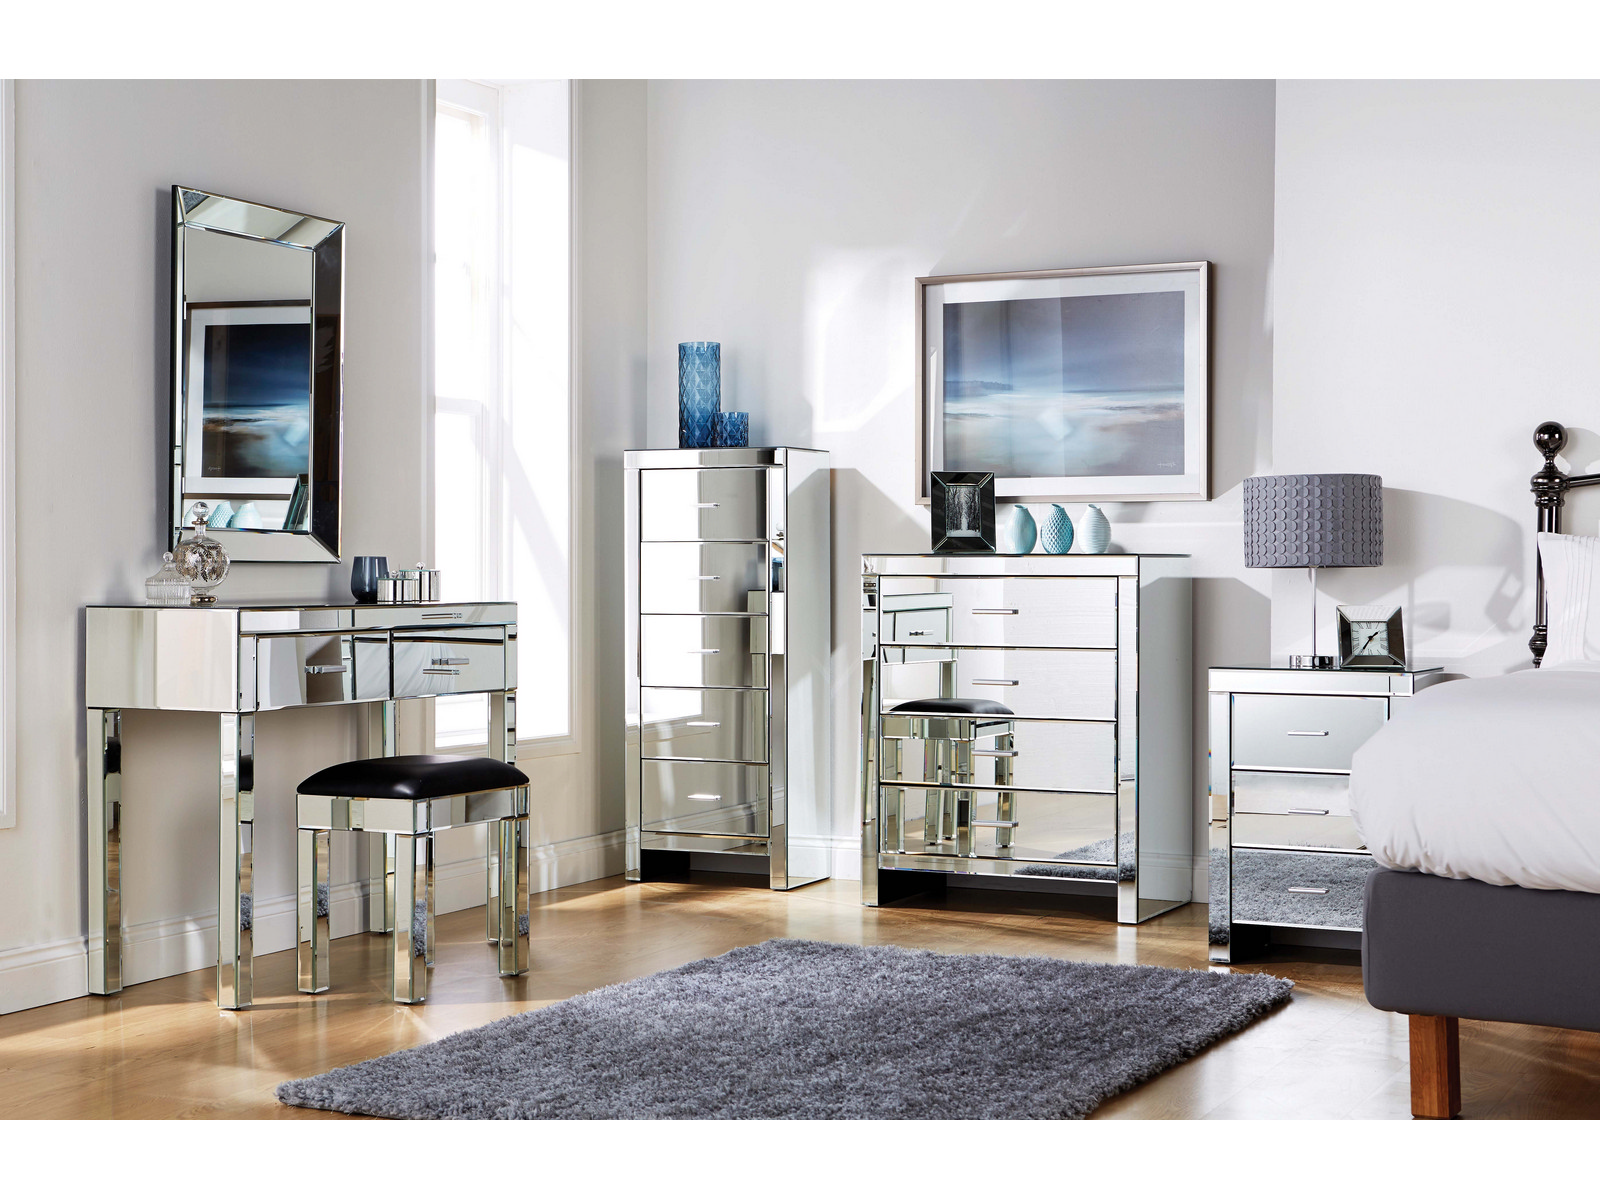 dressing room furniture. Mirrored Furniture Bedroom Collection - Glass Chest Drawers Dressing Table Range Room E